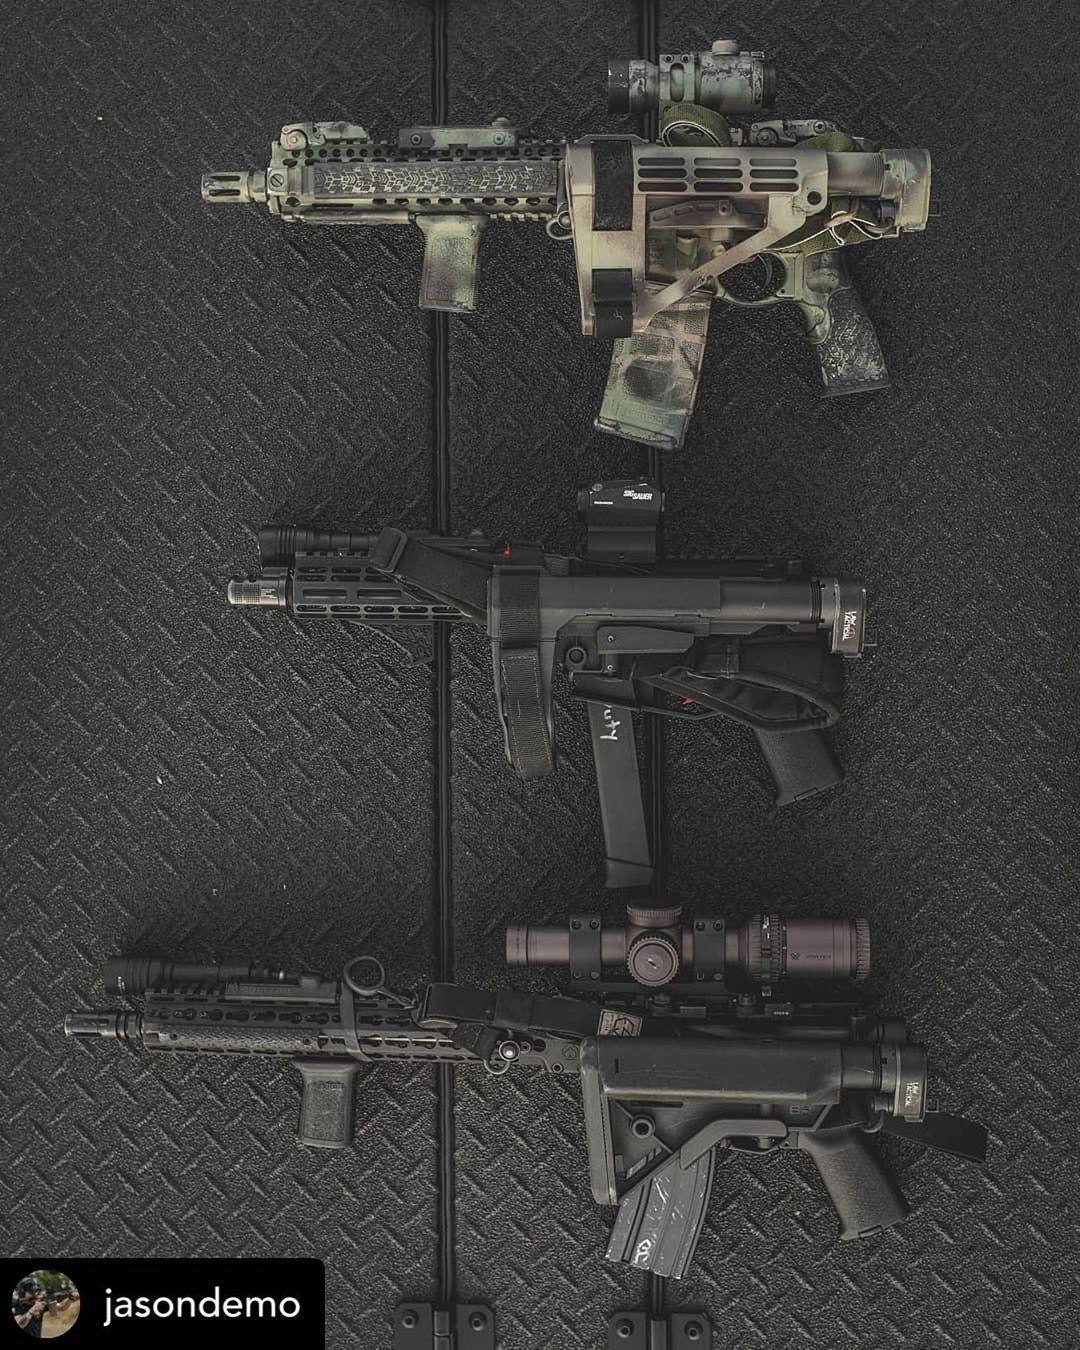 Law Tactical On Instagram Reposted Jasondemo I Guess You Can Say I M A Fan Of Lawtactical Folders Number Tactical Modeling Techniques Instagram